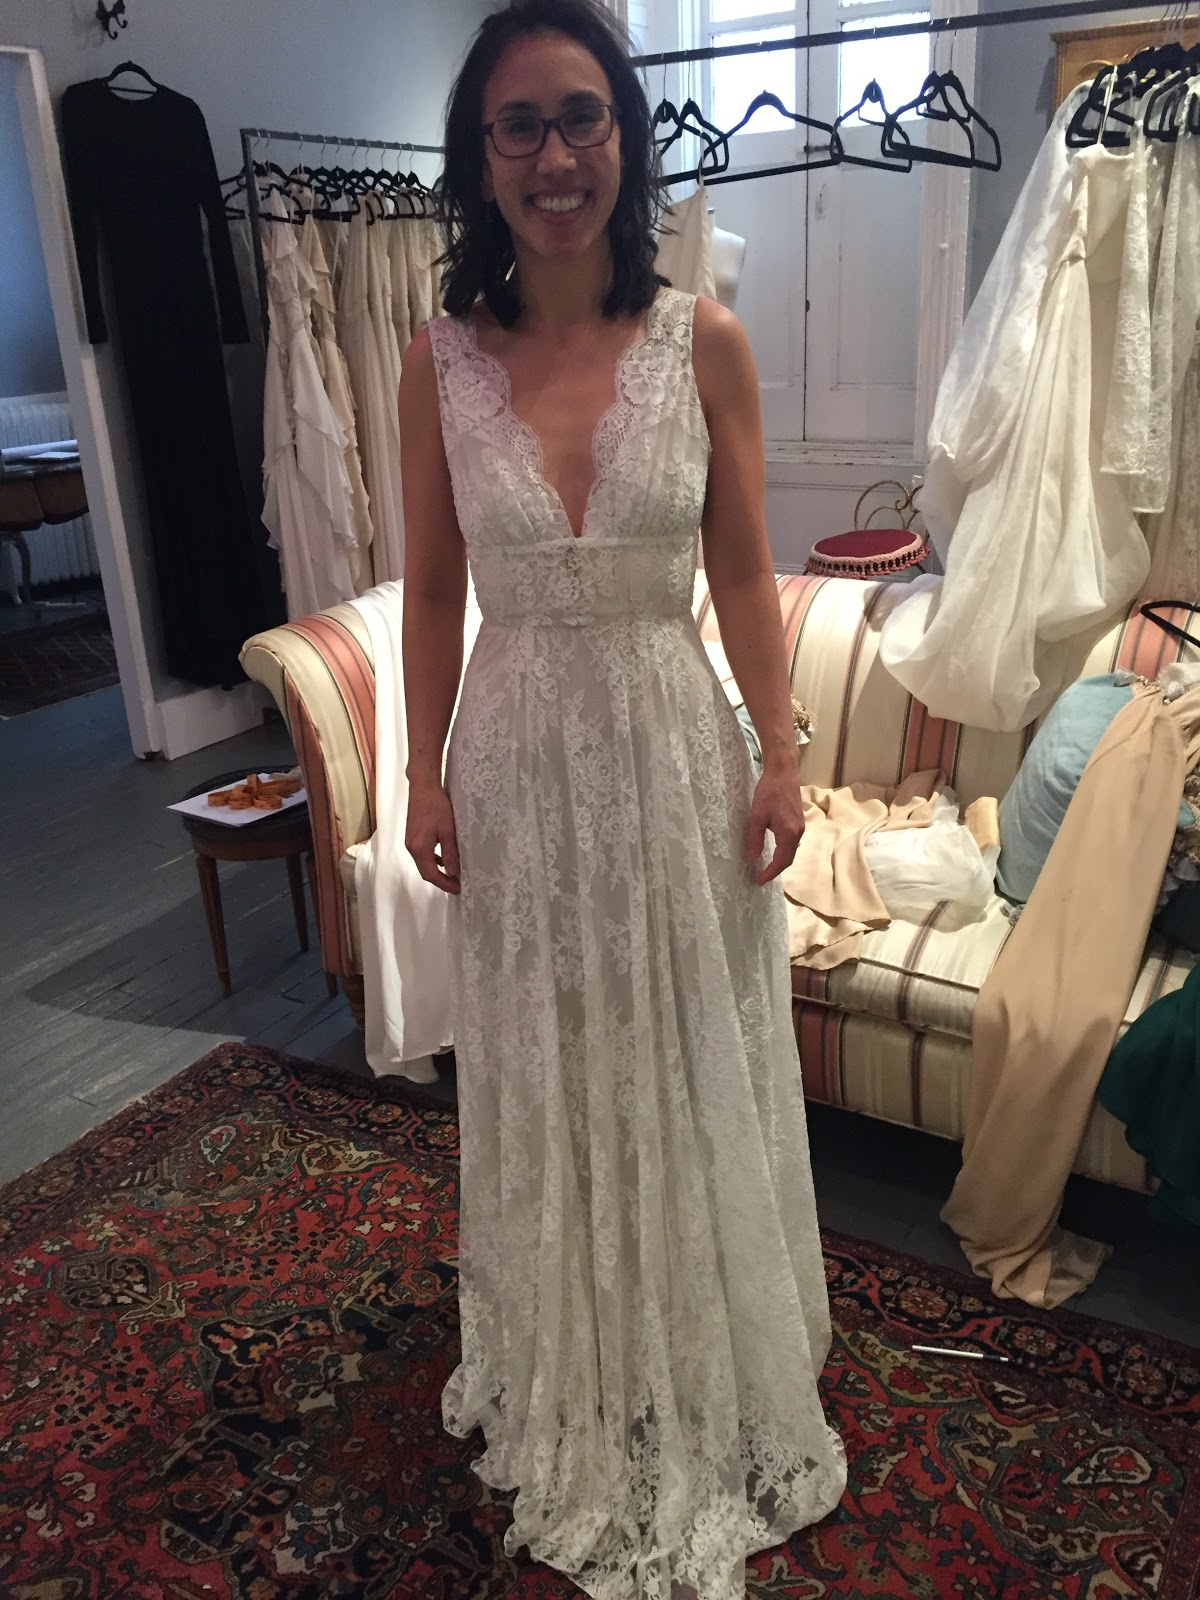 While there were things I liked about the dress 95f5cdb1a4bb